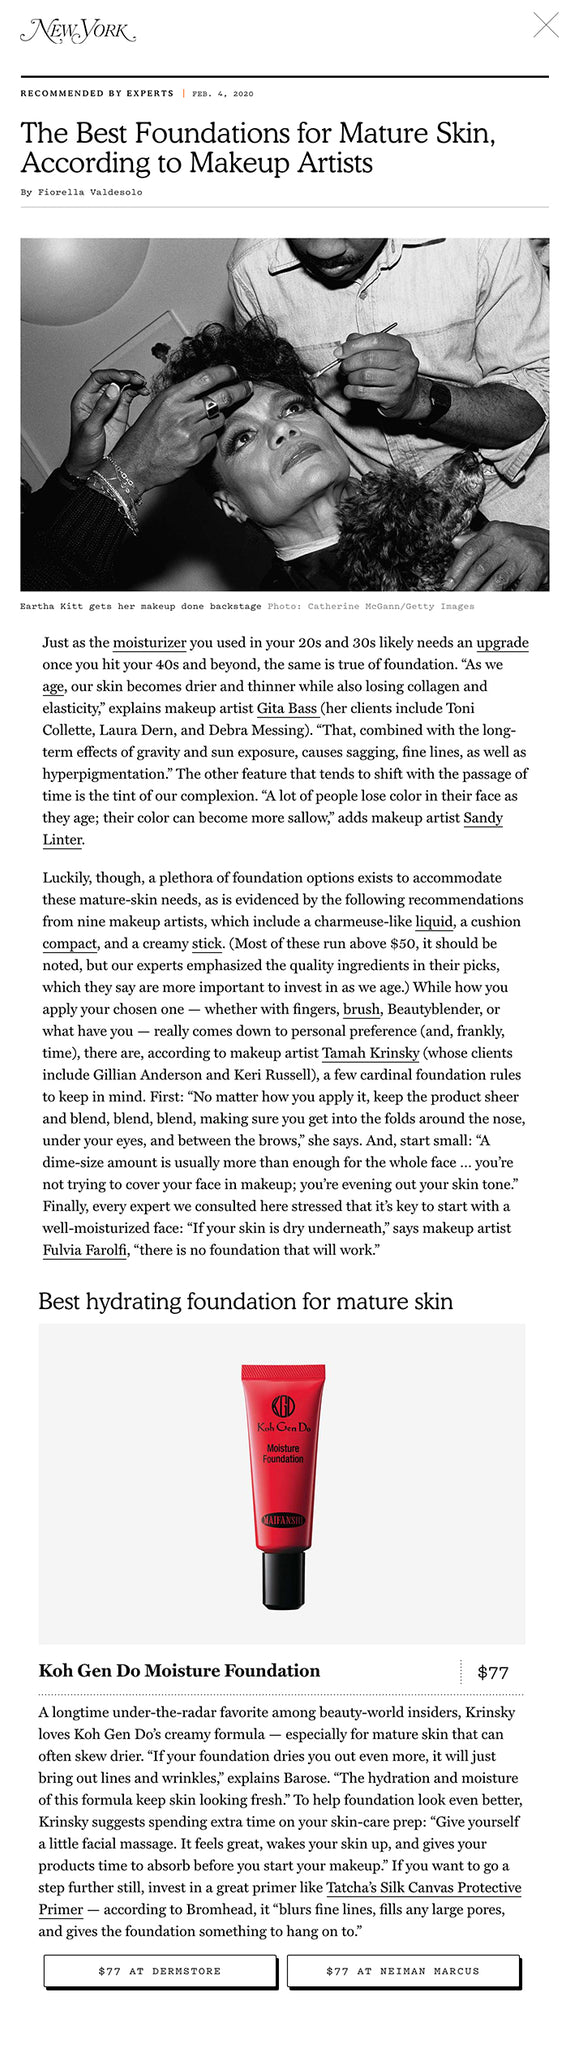 "Just as the moisturizer you used in your 20s and 30s likely needs an upgrade once you hit your 40s and beyond, the same is true of foundation. ""As we age, our skin becomes drier and thinner while also losing collagen and elasticity,"" explains makeup artist Gita Bass (her clients include Toni Collette, Laura Dern, and Debra Messing). ""That, combined with the long-term effects of gravity and sun exposure, causes sagging, fine lines, as well as hyperpigmentation."" The other feature that tends to shift with the passage of time is the tint of our complexion. ""A lot of people lose color in their face as they age; their color can become more sallow,"" adds makeup artist Sandy Linter.  Luckily, though, a plethora of foundation options exists to accommodate these mature-skin needs, as is evidenced by the following recommendations from nine makeup artists, which include a charmeuse-like liquid, a cushion compact, and a creamy stick. (Most of these run above $50, it should be noted, but our experts emphasized the quality ingredients in their picks, which they say are more important to invest in as we age.) While how you apply your chosen one — whether with fingers, brush, Beautyblender, or what have you — really comes down to personal preference (and, frankly, time), there are, according to makeup artist Tamah Krinsky (whose clients include Gillian Anderson and Keri Russell), a few cardinal foundation rules to keep in mind. First: ""No matter how you apply it, keep the product sheer and blend, blend, blend, making sure you get into the folds around the nose, under your eyes, and between the brows,"" she says. And, start small: ""A dime-size amount is usually more than enough for the whole face … you're not trying to cover your face in makeup; you're evening out your skin tone."" Finally, every expert we consulted here stressed that it's key to start with a well-moisturized face: ""If your skin is dry underneath,"" says makeup artist Fulvia Farolfi, ""there is no foundation that will work.""  Best overall foundation for mature skin Best hydrating foundation for mature skin A longtime under-the-radar favorite among beauty-world insiders, Krinsky loves Koh Gen Do's creamy formula — especially for mature skin that can often skew drier. ""If your foundation dries you out even more, it will just bring out lines and wrinkles,"" explains Barose. ""The hydration and moisture of this formula keep skin looking fresh."" To help foundation look even better, Krinsky suggests spending extra time on your skin-care prep: ""Give yourself a little facial massage. It feels great, wakes your skin up, and gives your products time to absorb before you start your makeup."" If you want to go a step further still, invest in a great primer like Tatcha's Silk Canvas Protective Primer — according to Bromhead, it ""blurs fine lines, fills any large pores, and gives the foundation something to hang on to."""